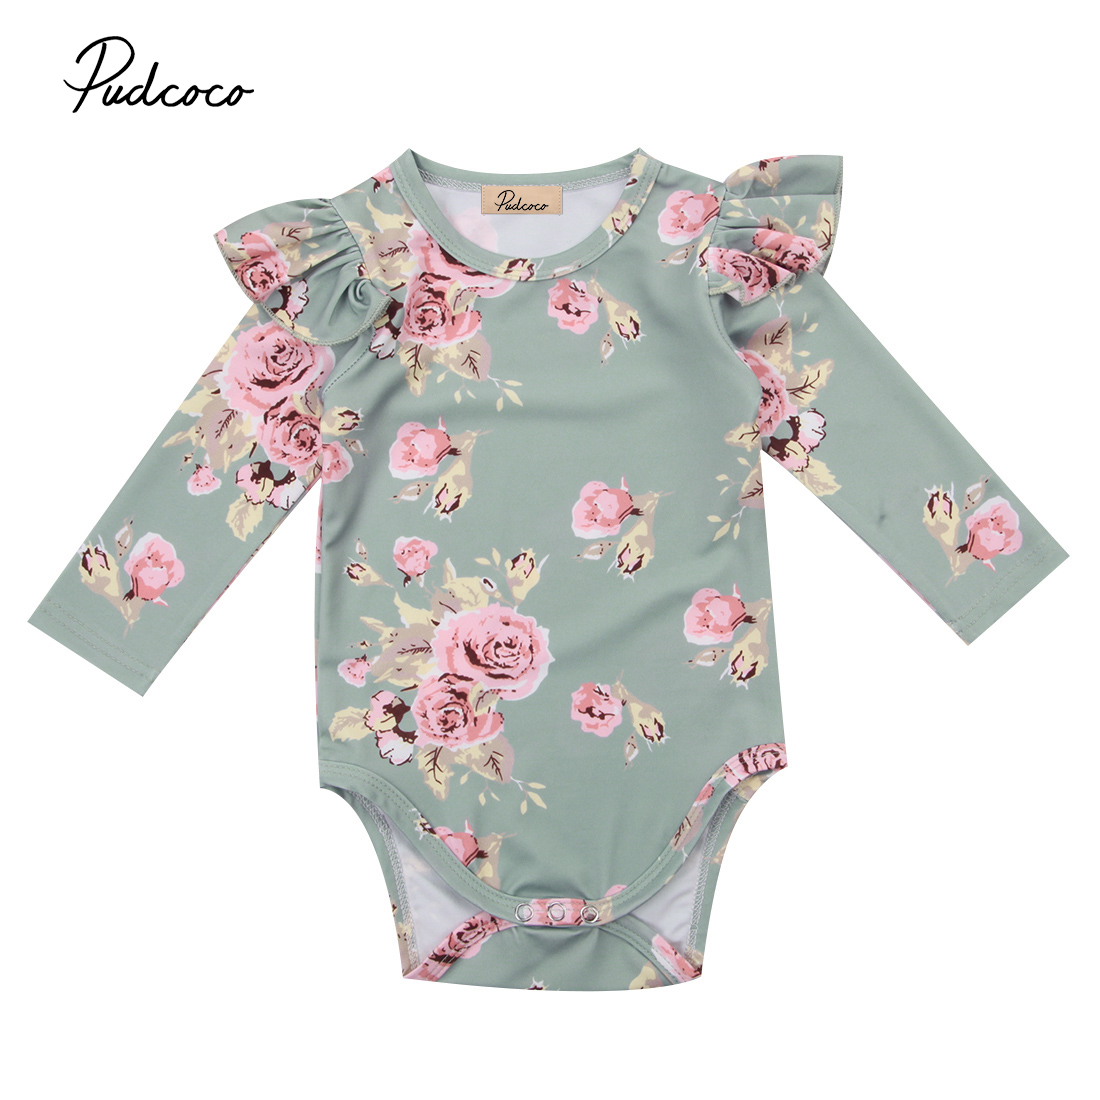 New 2017 Infant Baby Girls Flolal Ruffle Long Sleeve Romper Jumpsuit Toddler Outfits Clothes 0-18M